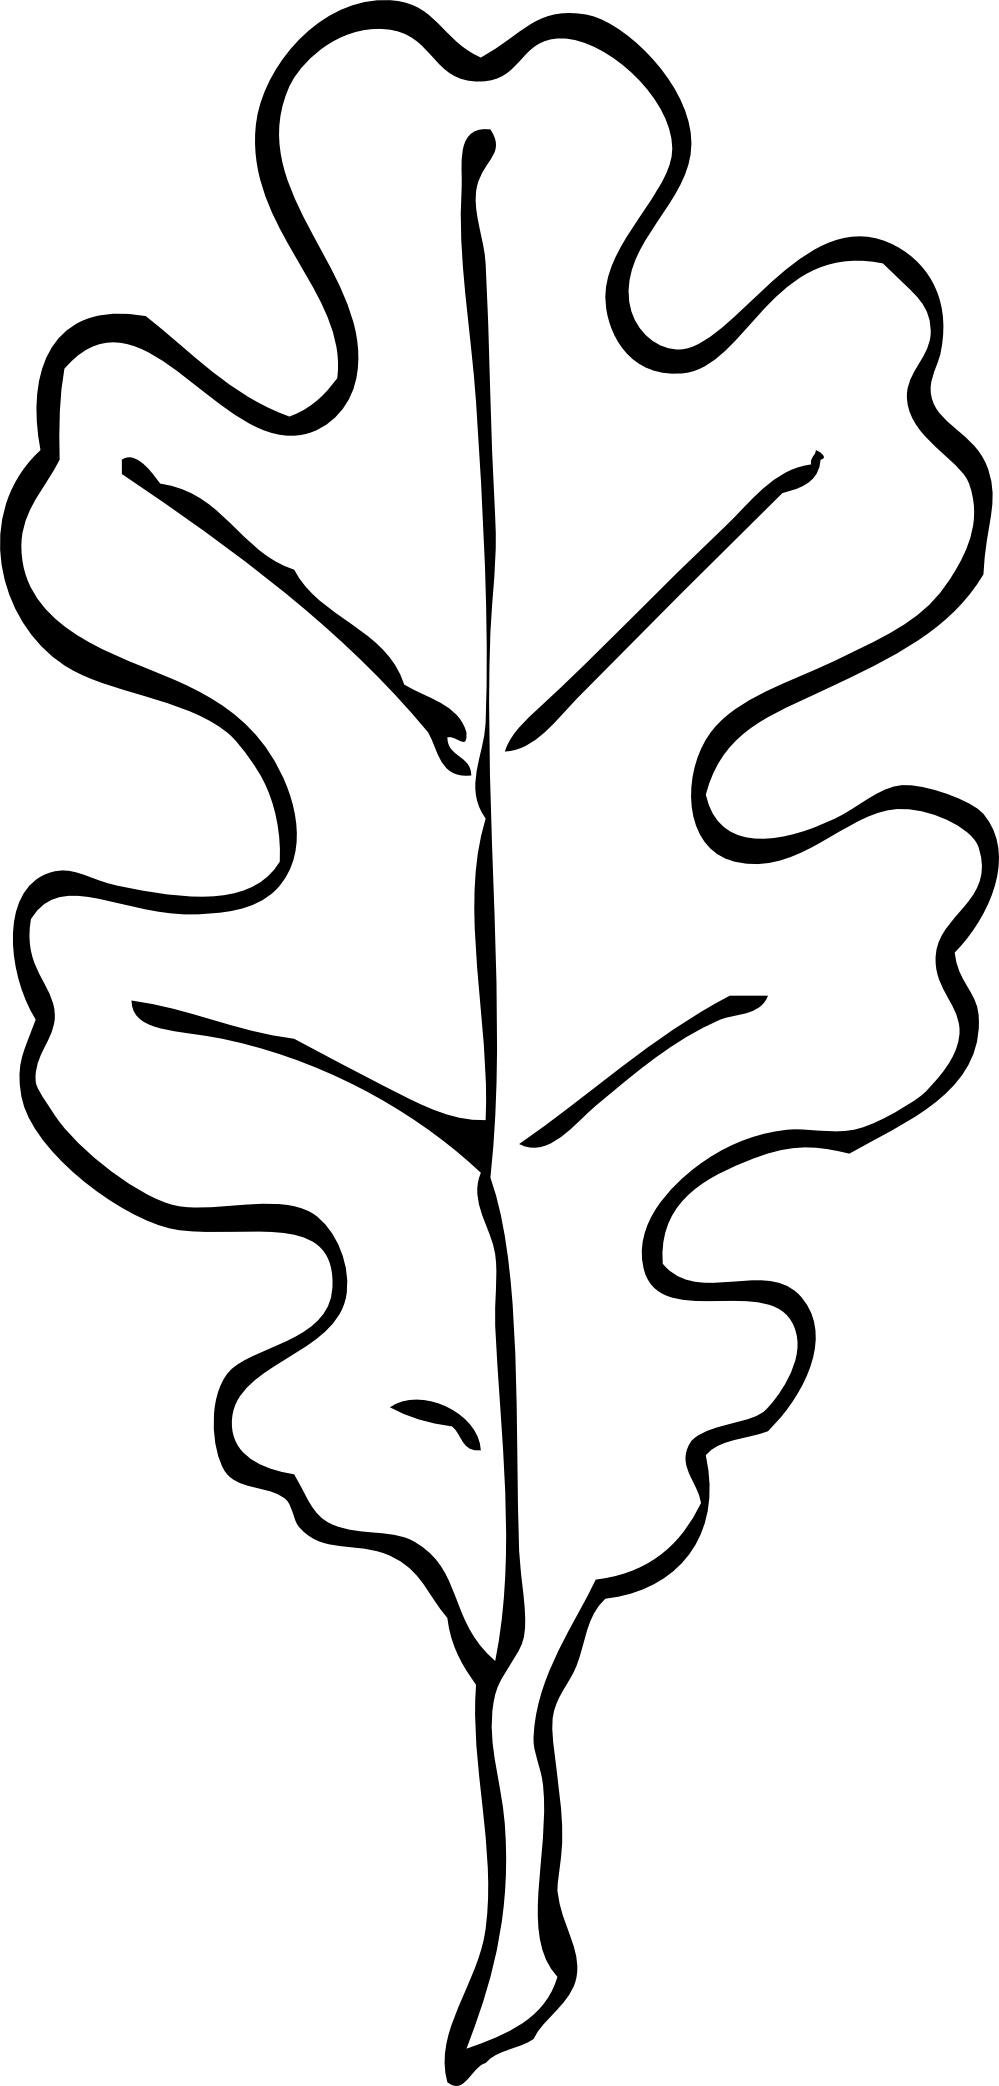 how to draw an oak leaf oak leaf drawing template at getdrawings free download an oak draw to leaf how